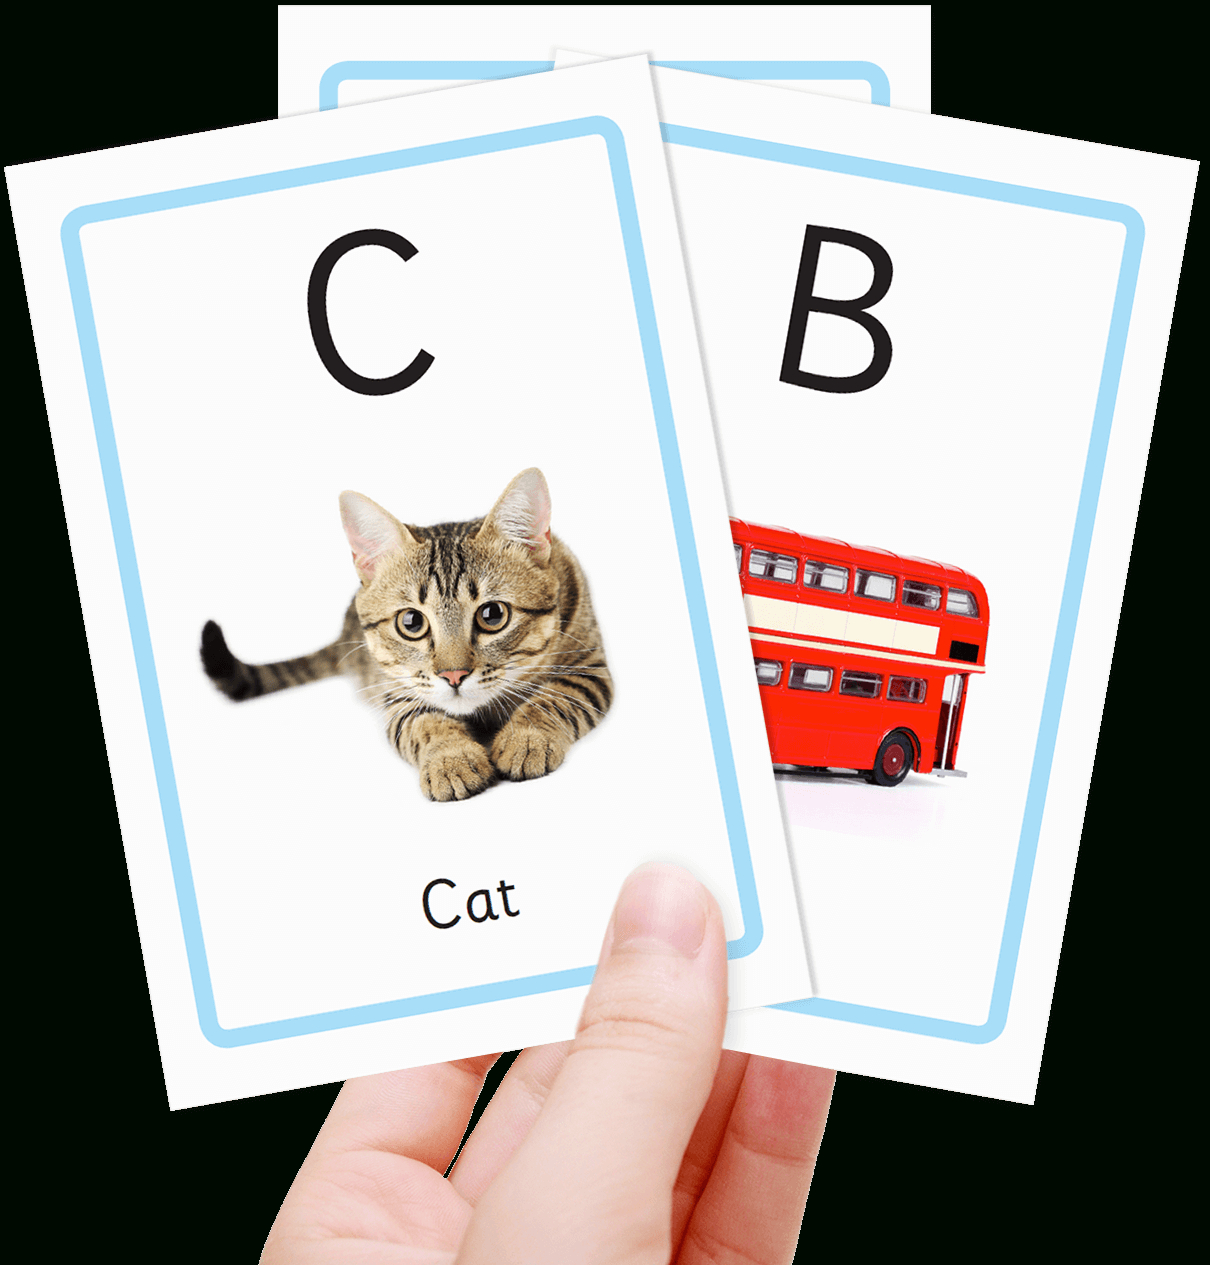 Free Alphabet Flashcards For Kids - Totcards - Free Printable Abc Flashcards